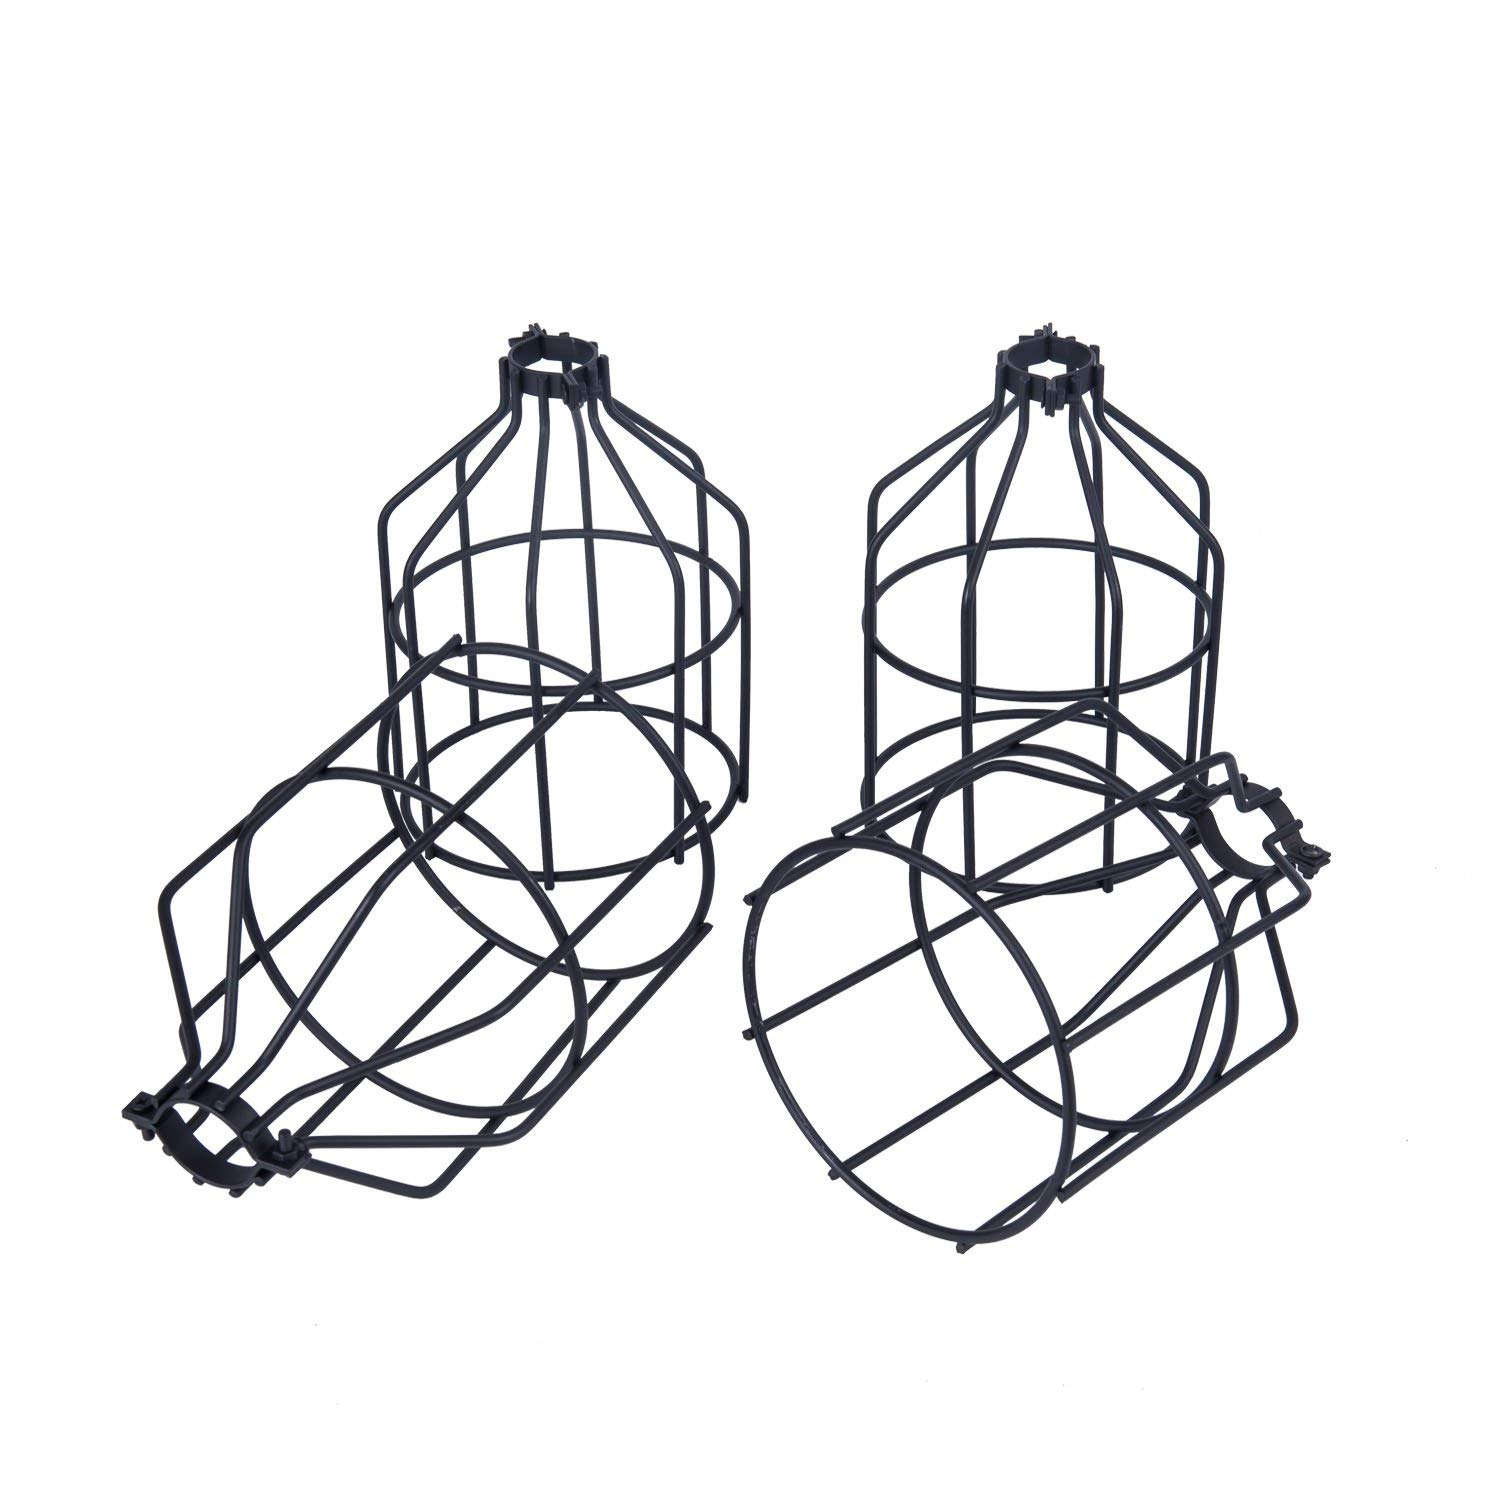 YaQi Lighting 4-Pack Metal Light Bulb Guard, Open Style Black Industrial Wire Cage, Clamp On Steel Lampshade for Ceiling Fan Lights & Vintage Lamp Holders